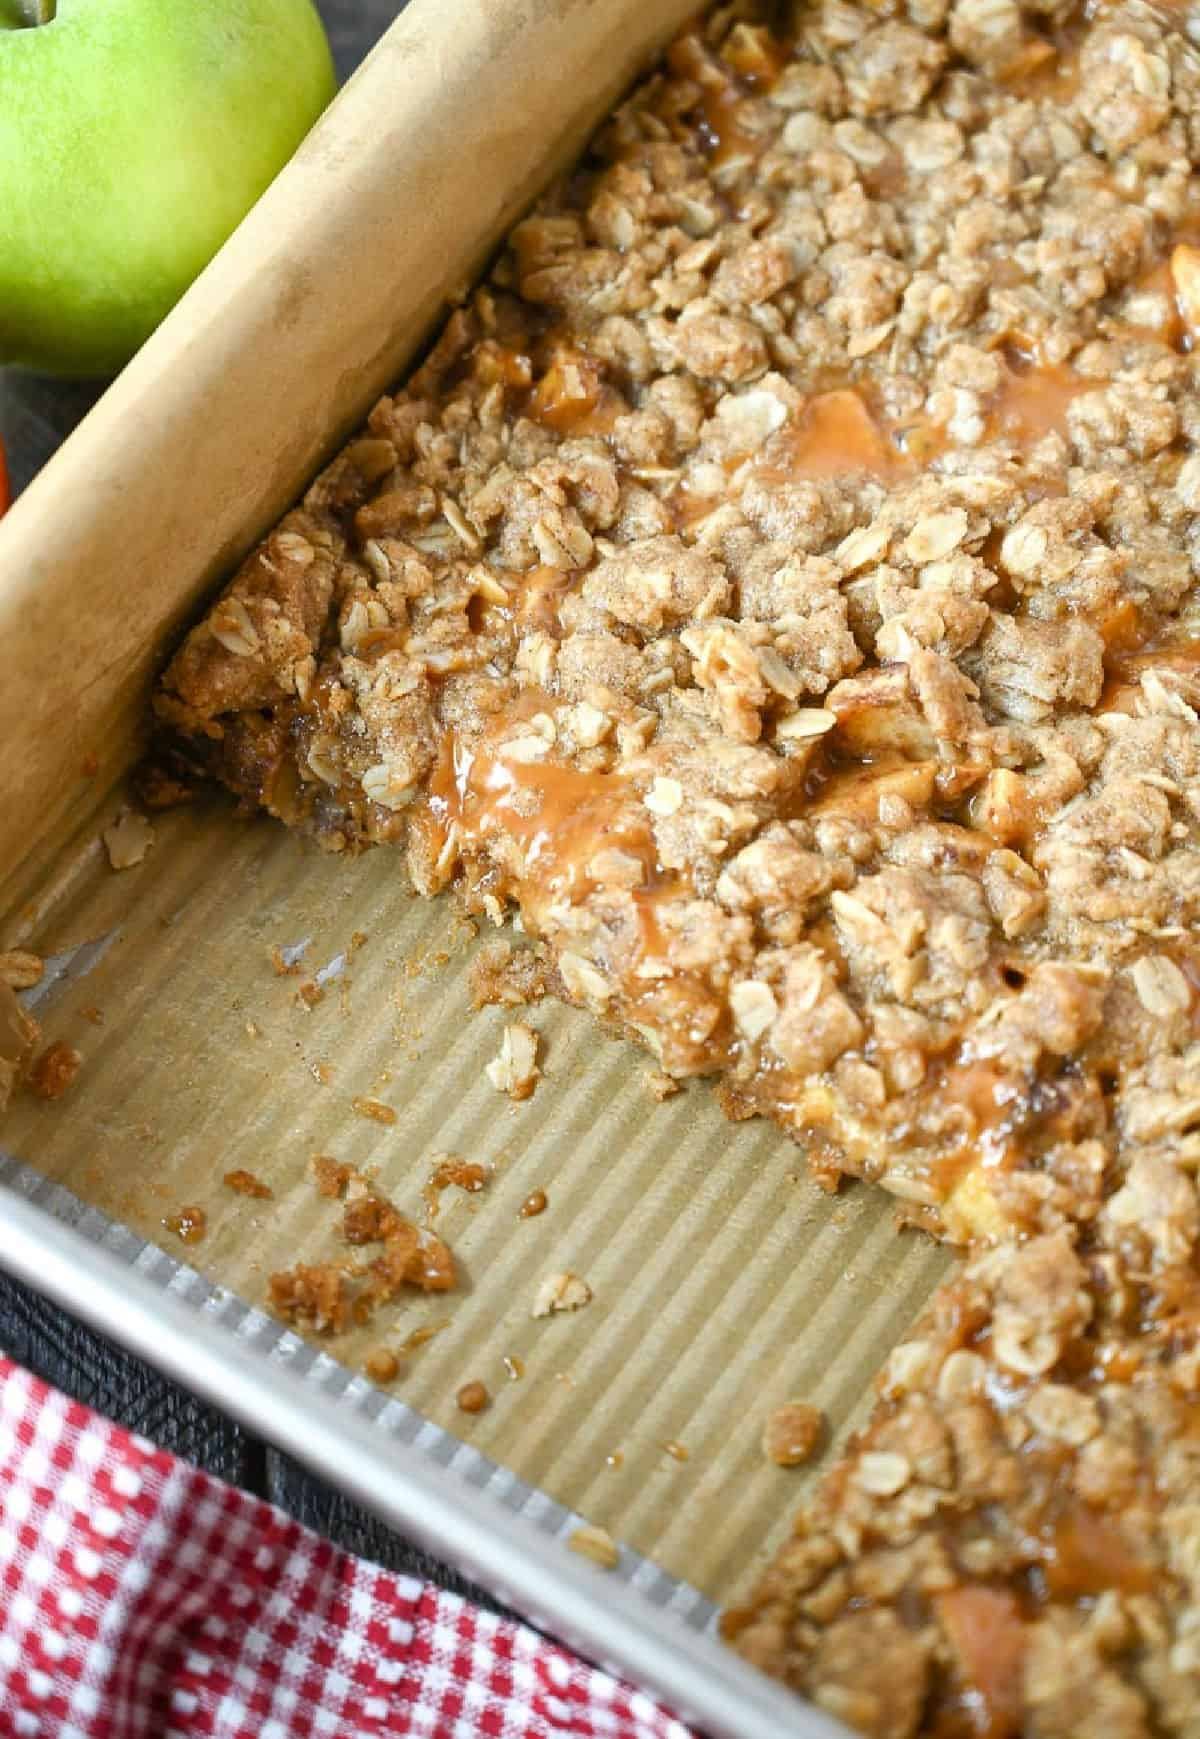 Caramel apple crumble in a metal baking pan with a few servings missing.